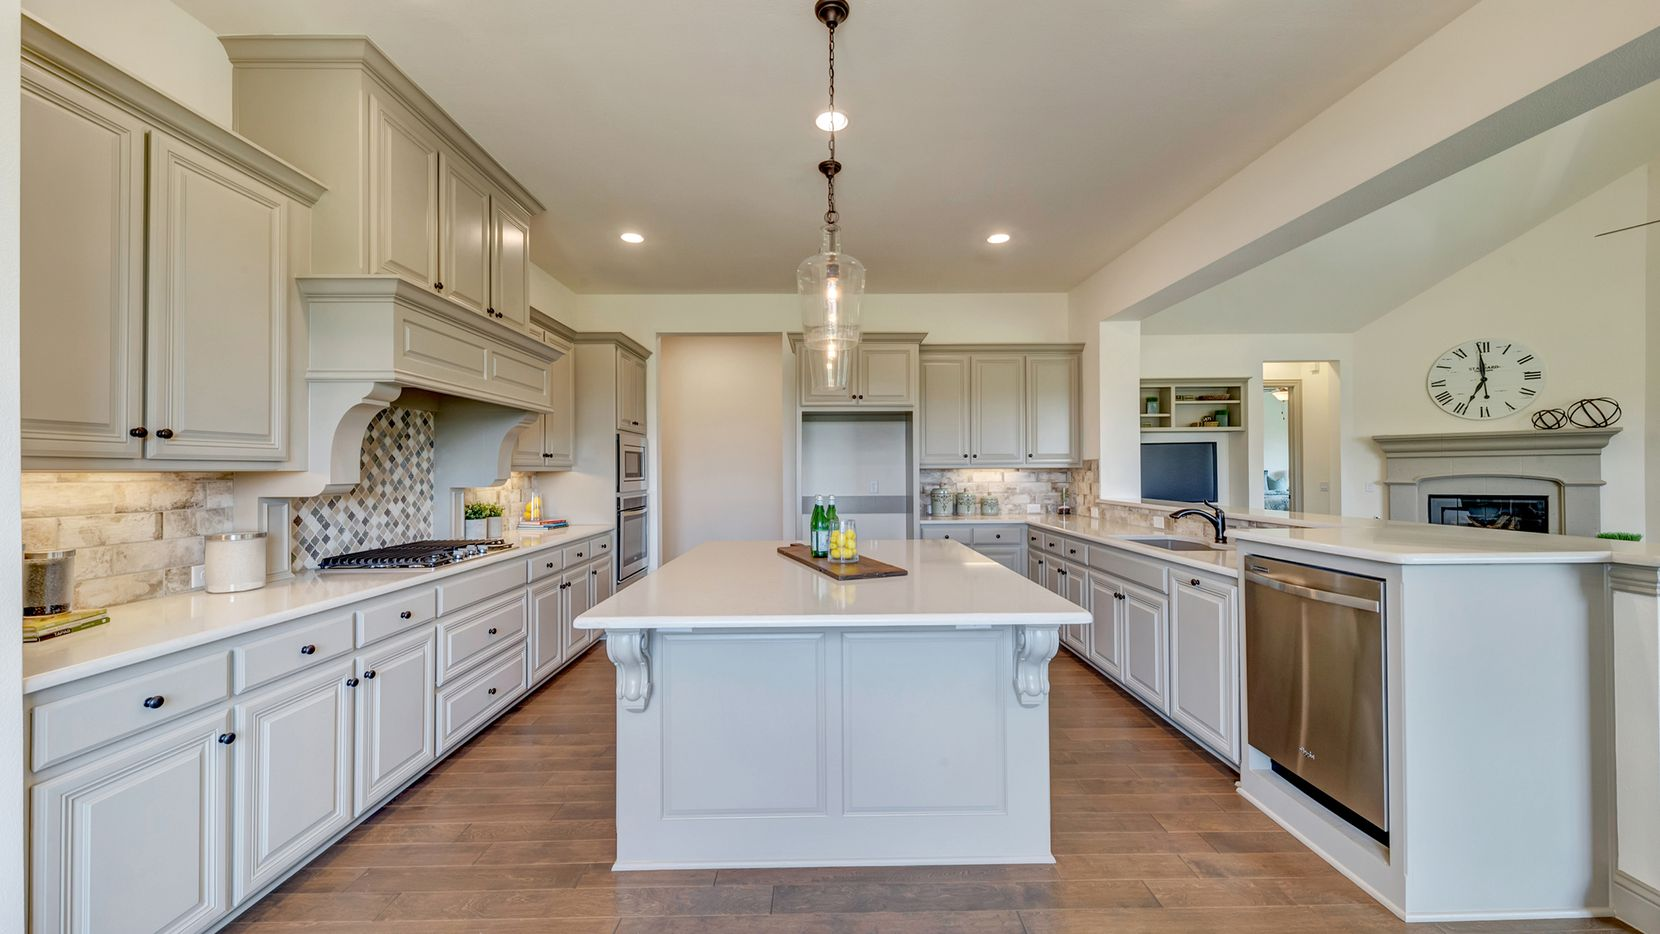 Orchard Flower, an award-winning 55-plus community, has limited homesites and move-in-ready homes available.